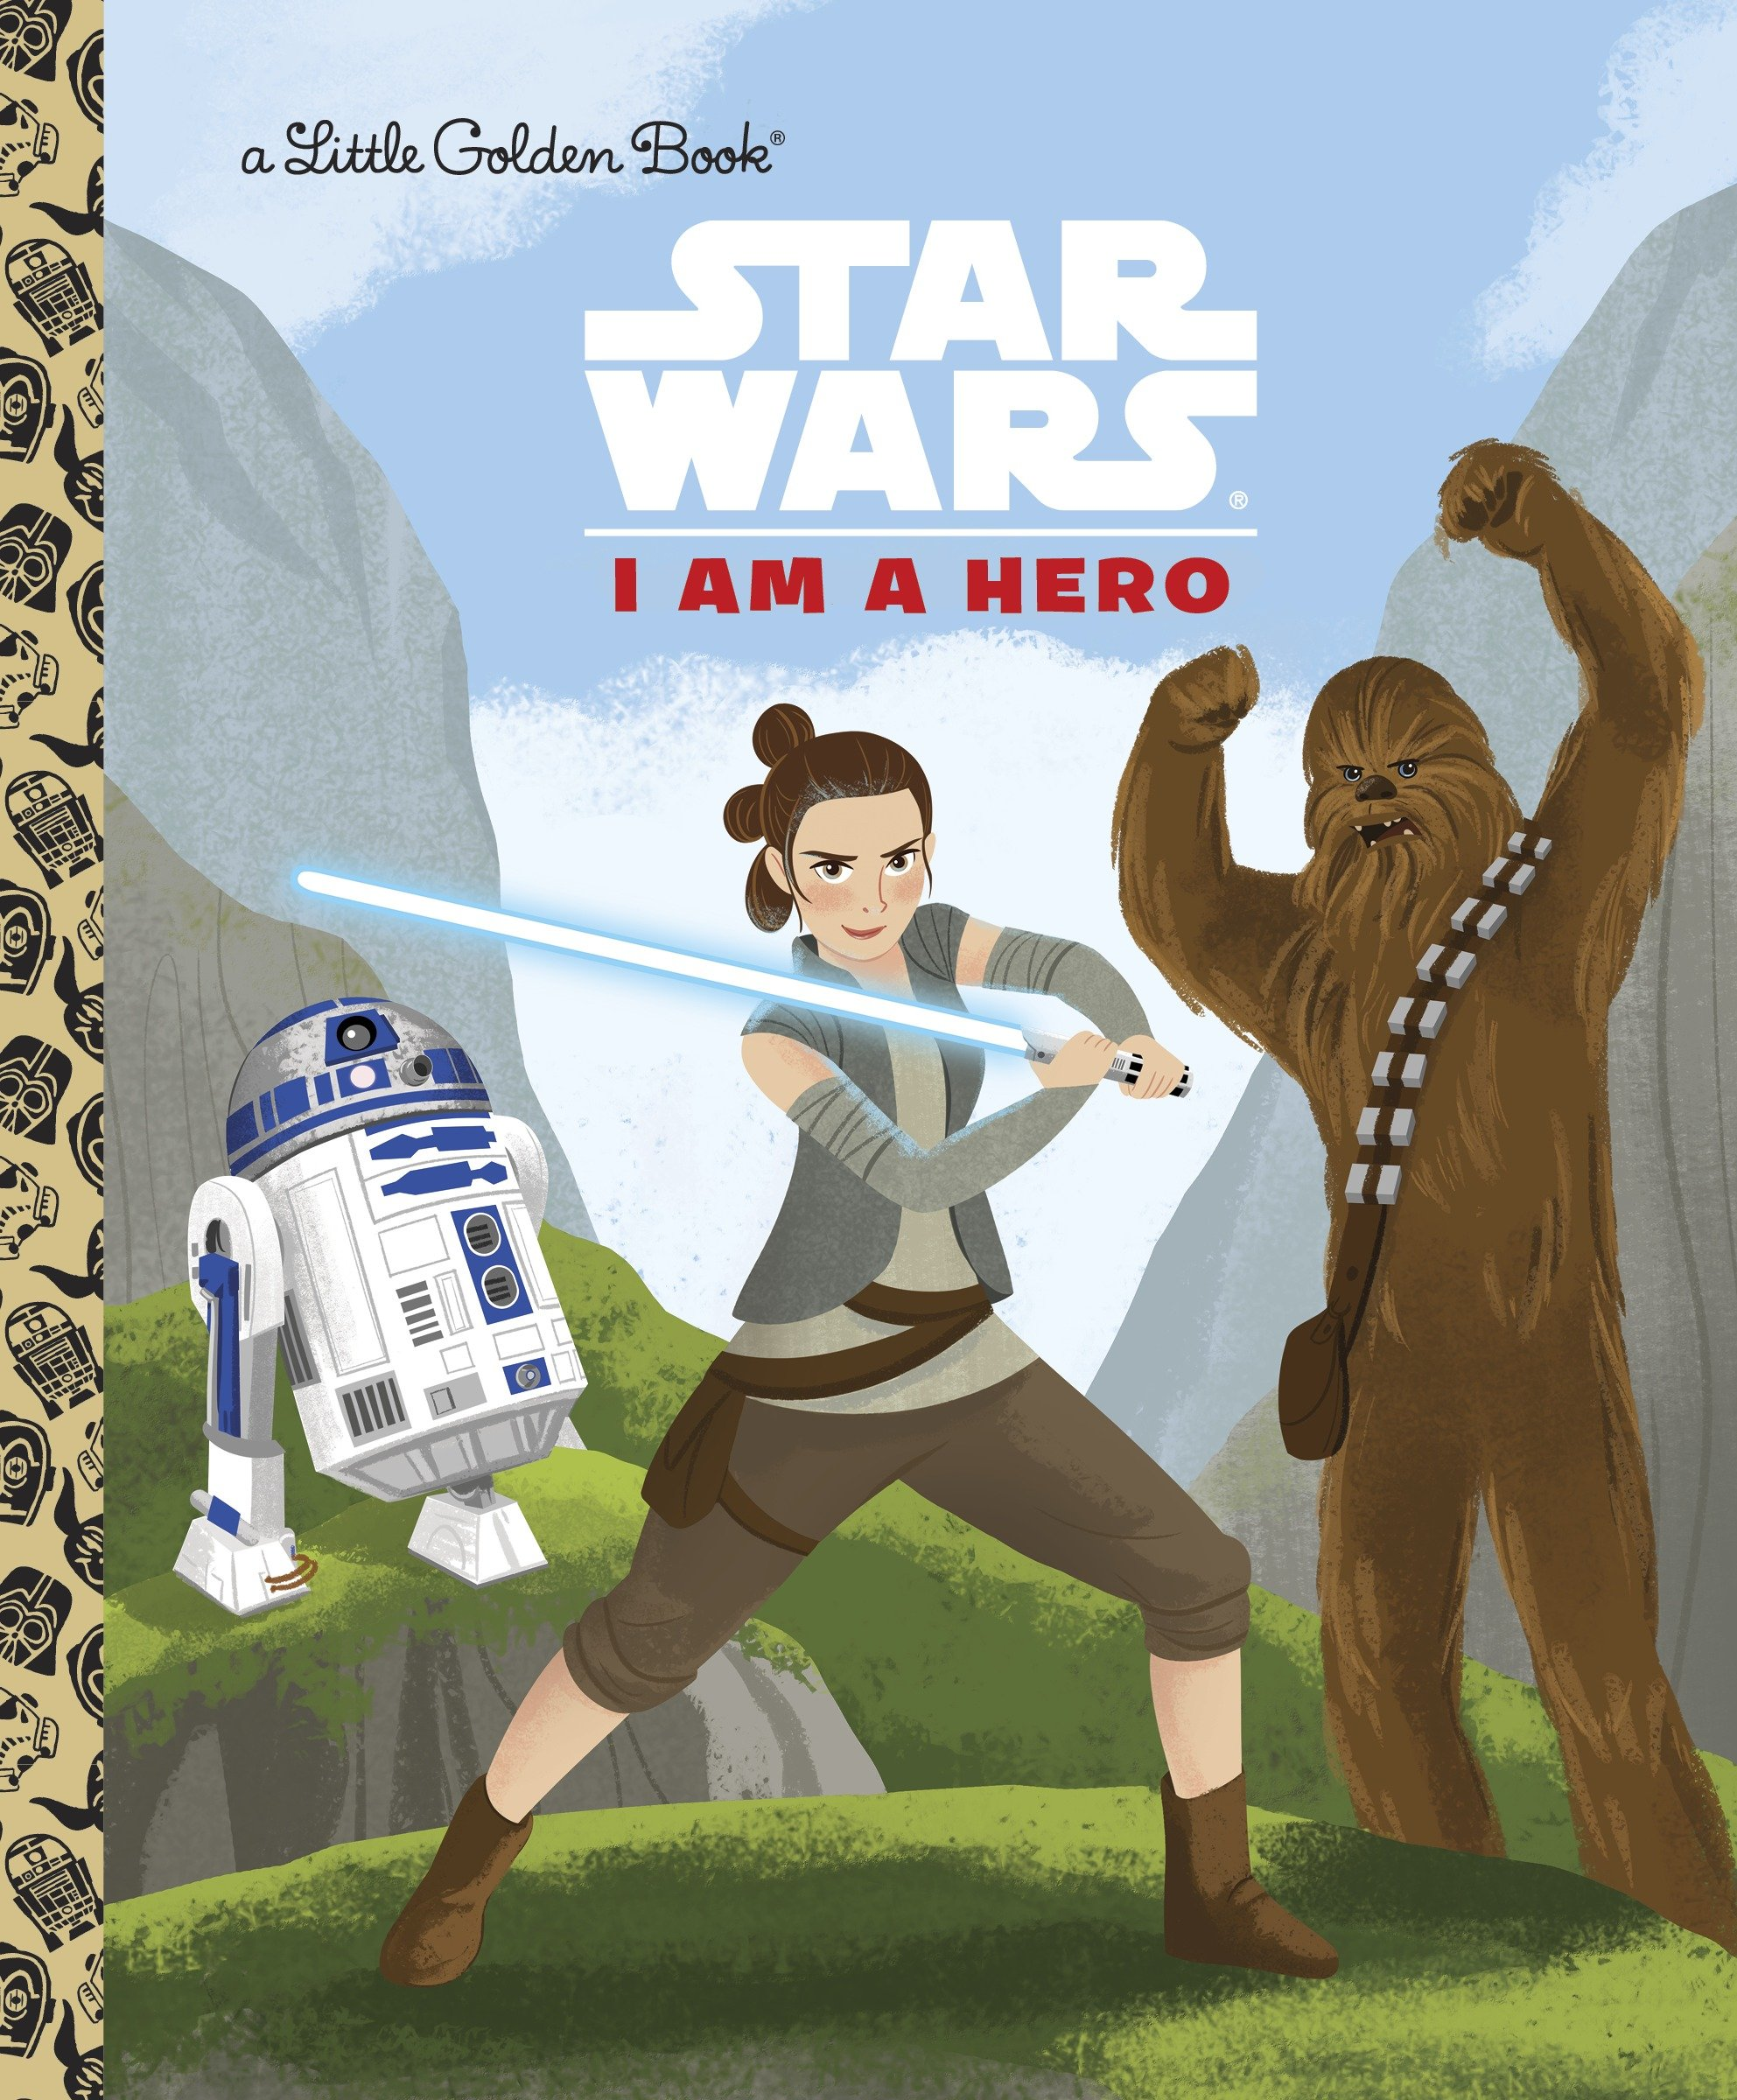 Star Wars: I am a Hero